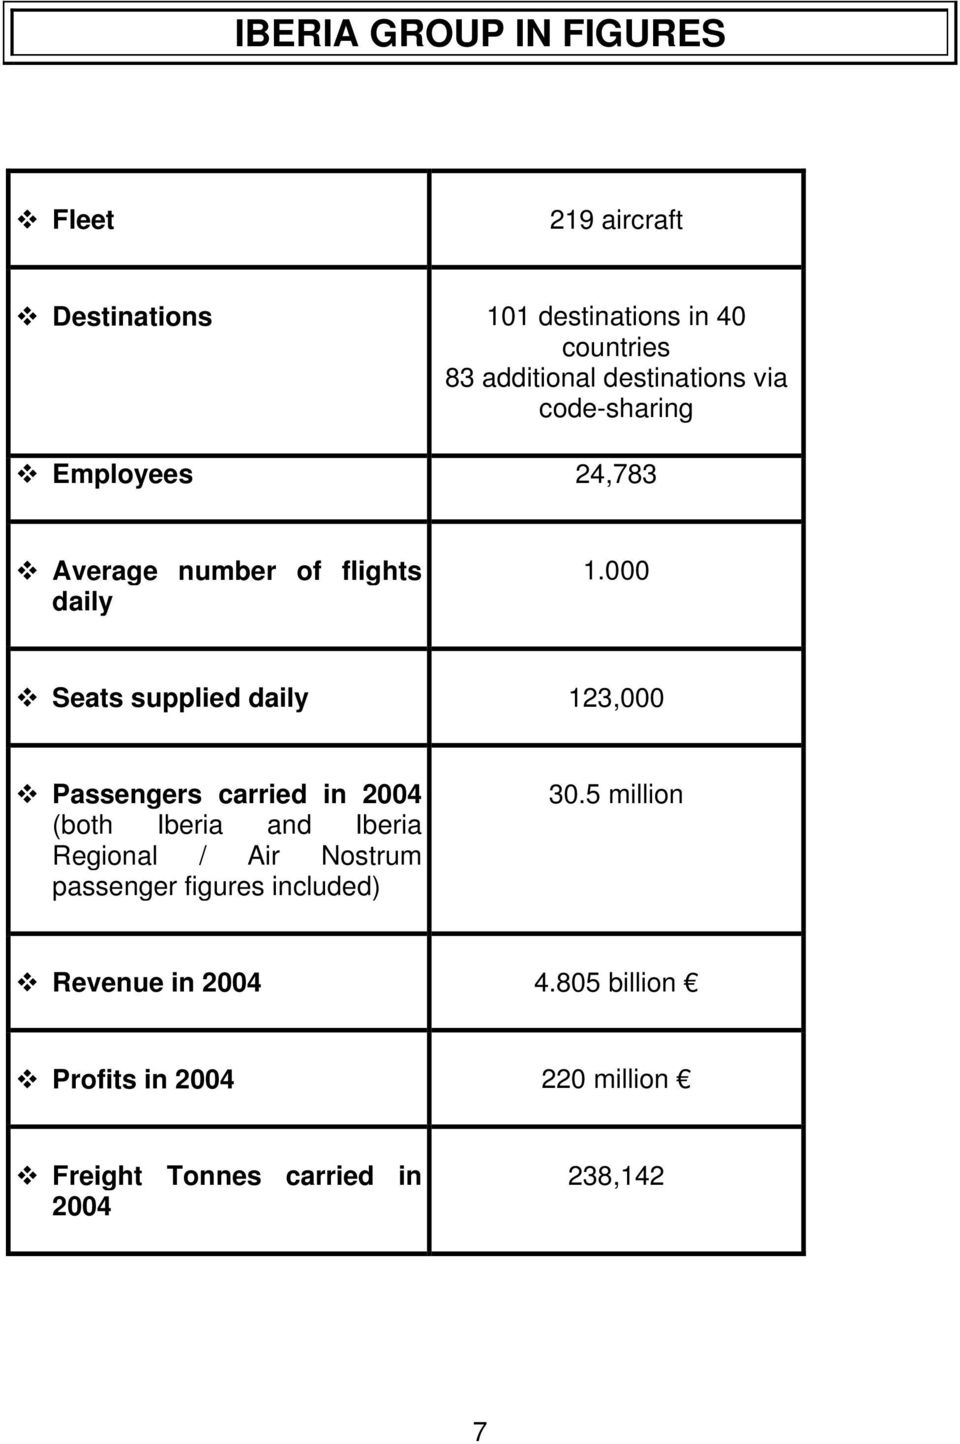 000 Seats supplied daily 123,000 Passengers carried in 2004 (both Iberia and Iberia Regional / Air Nostrum